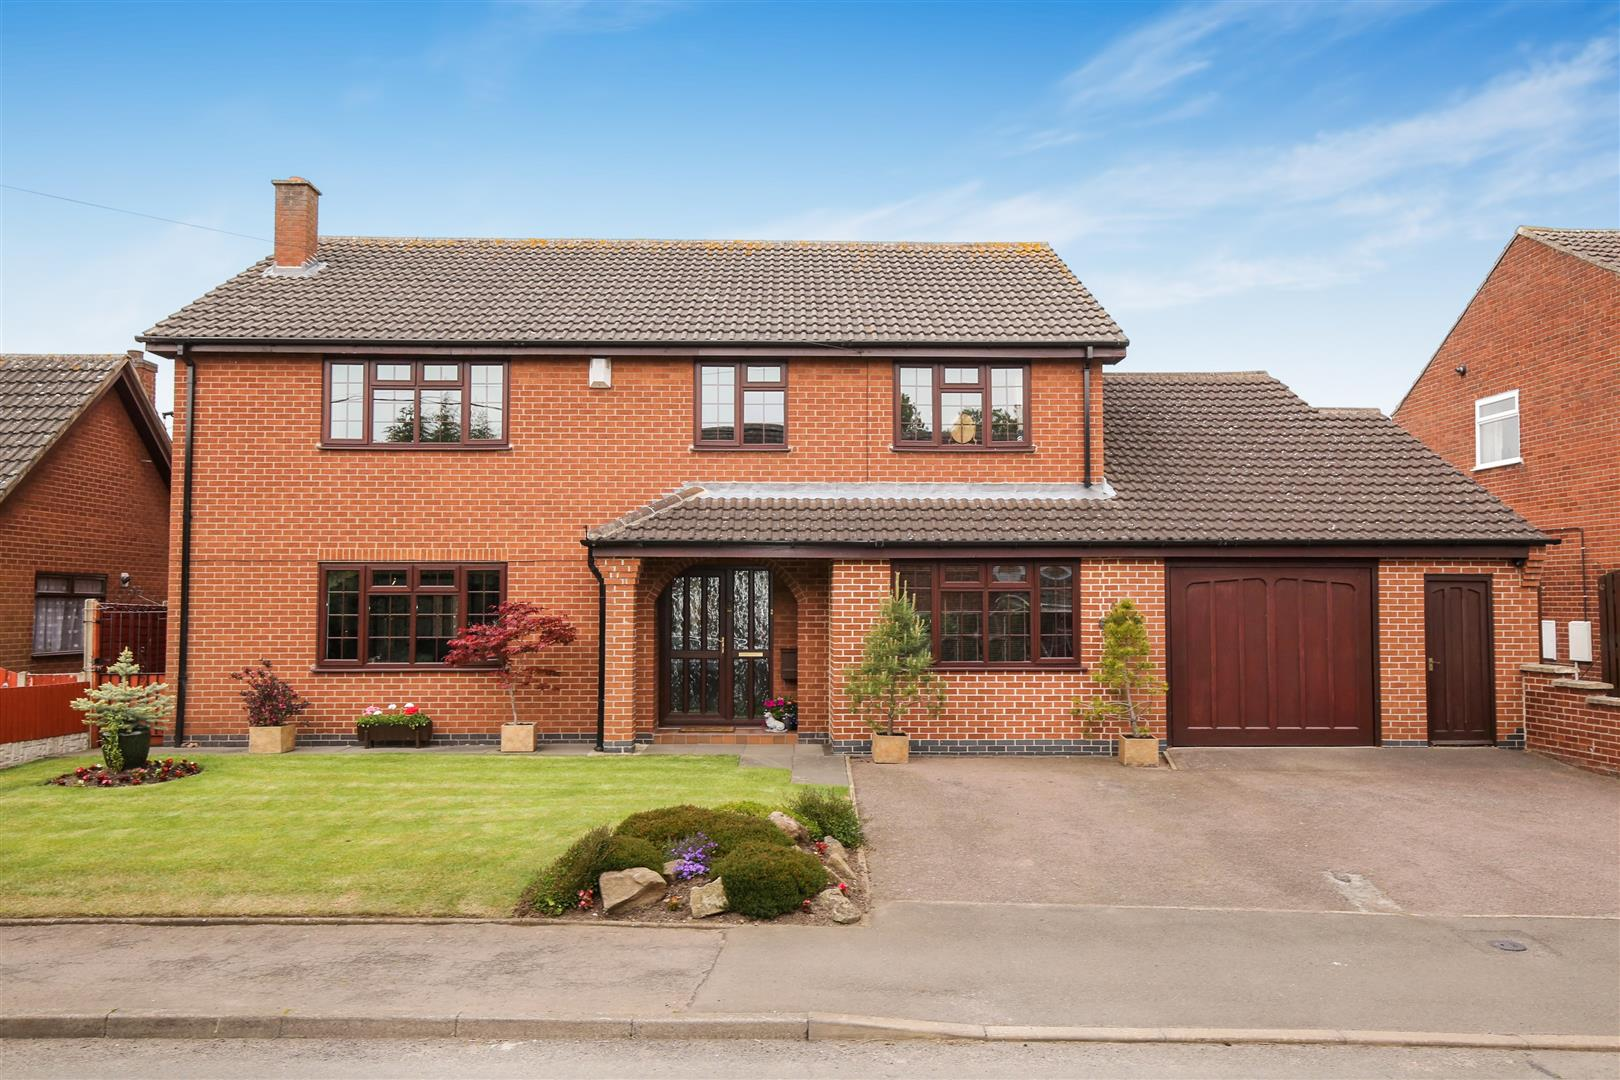 5 bedroom detached house for sale church street appleby magna swadlincote de de12 7bb for Appleby swimming pool timetable